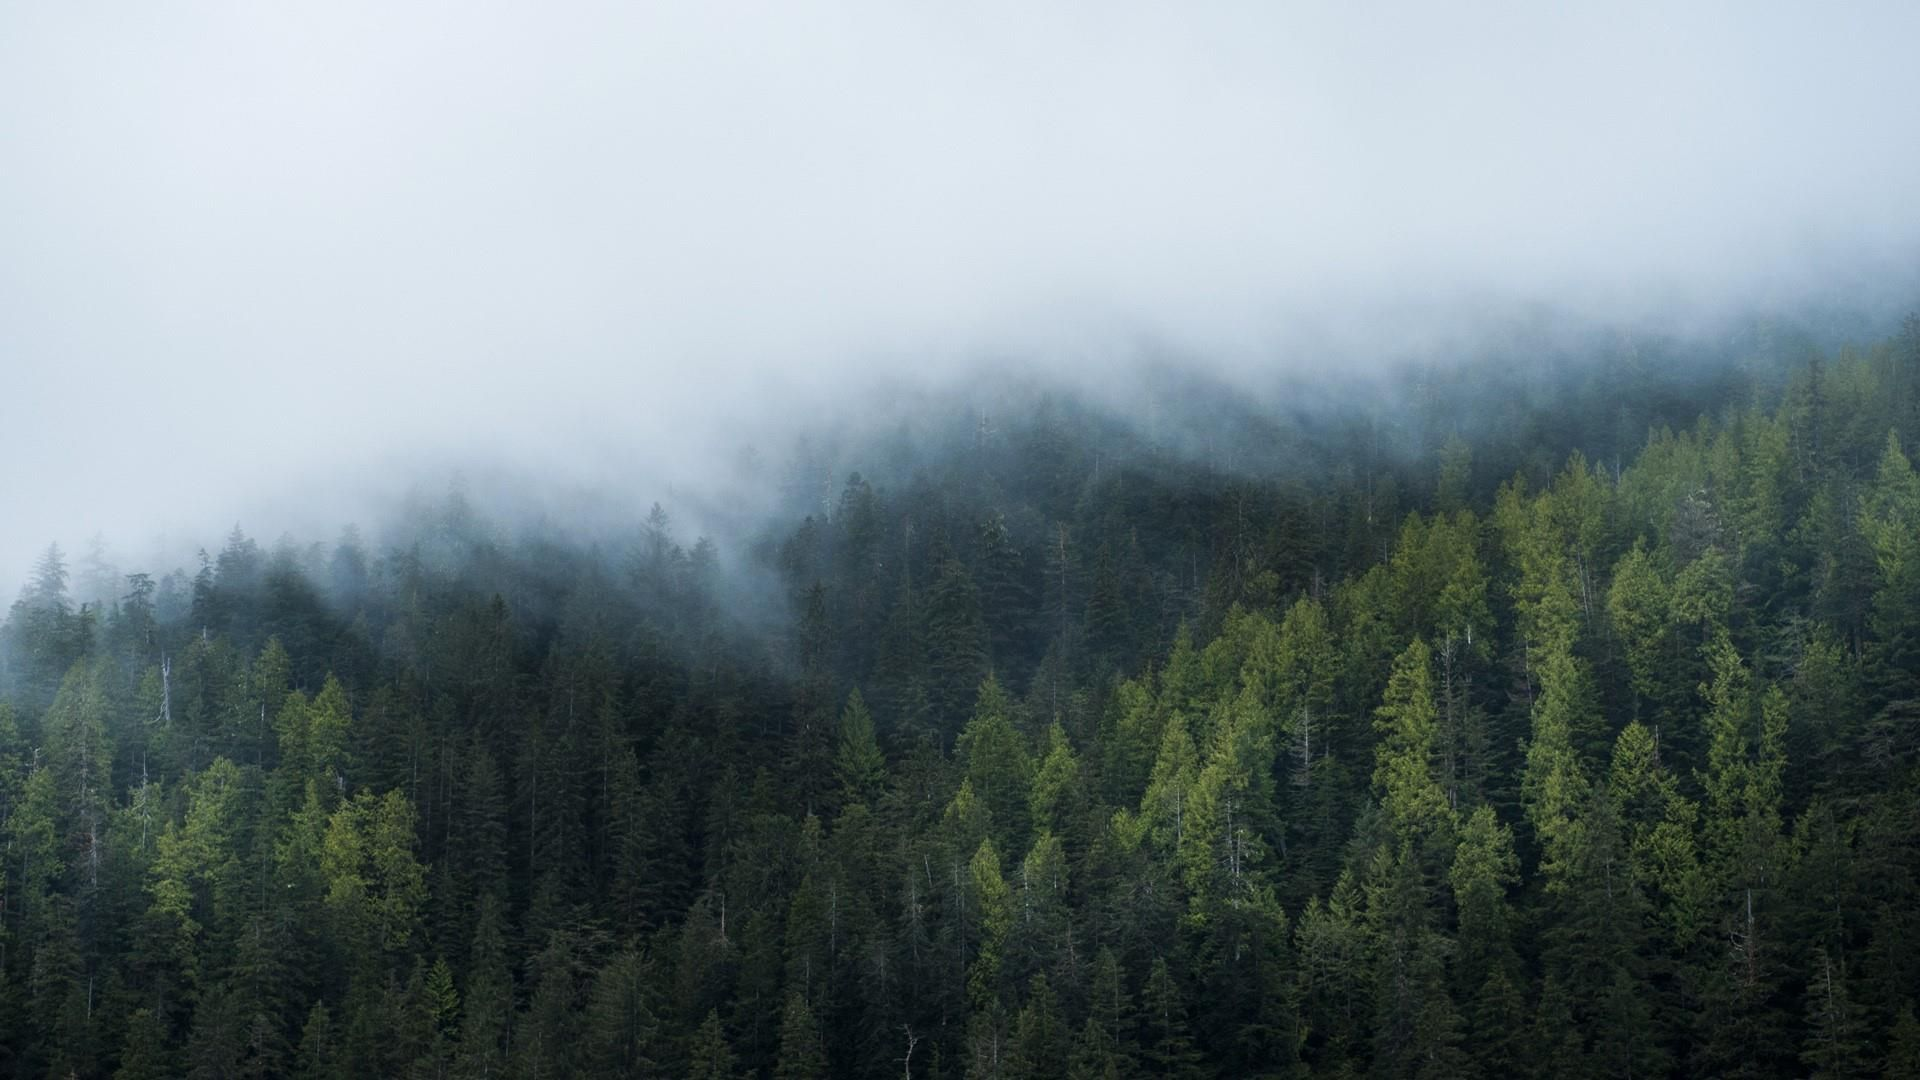 Foggy Forest download wallpaper image